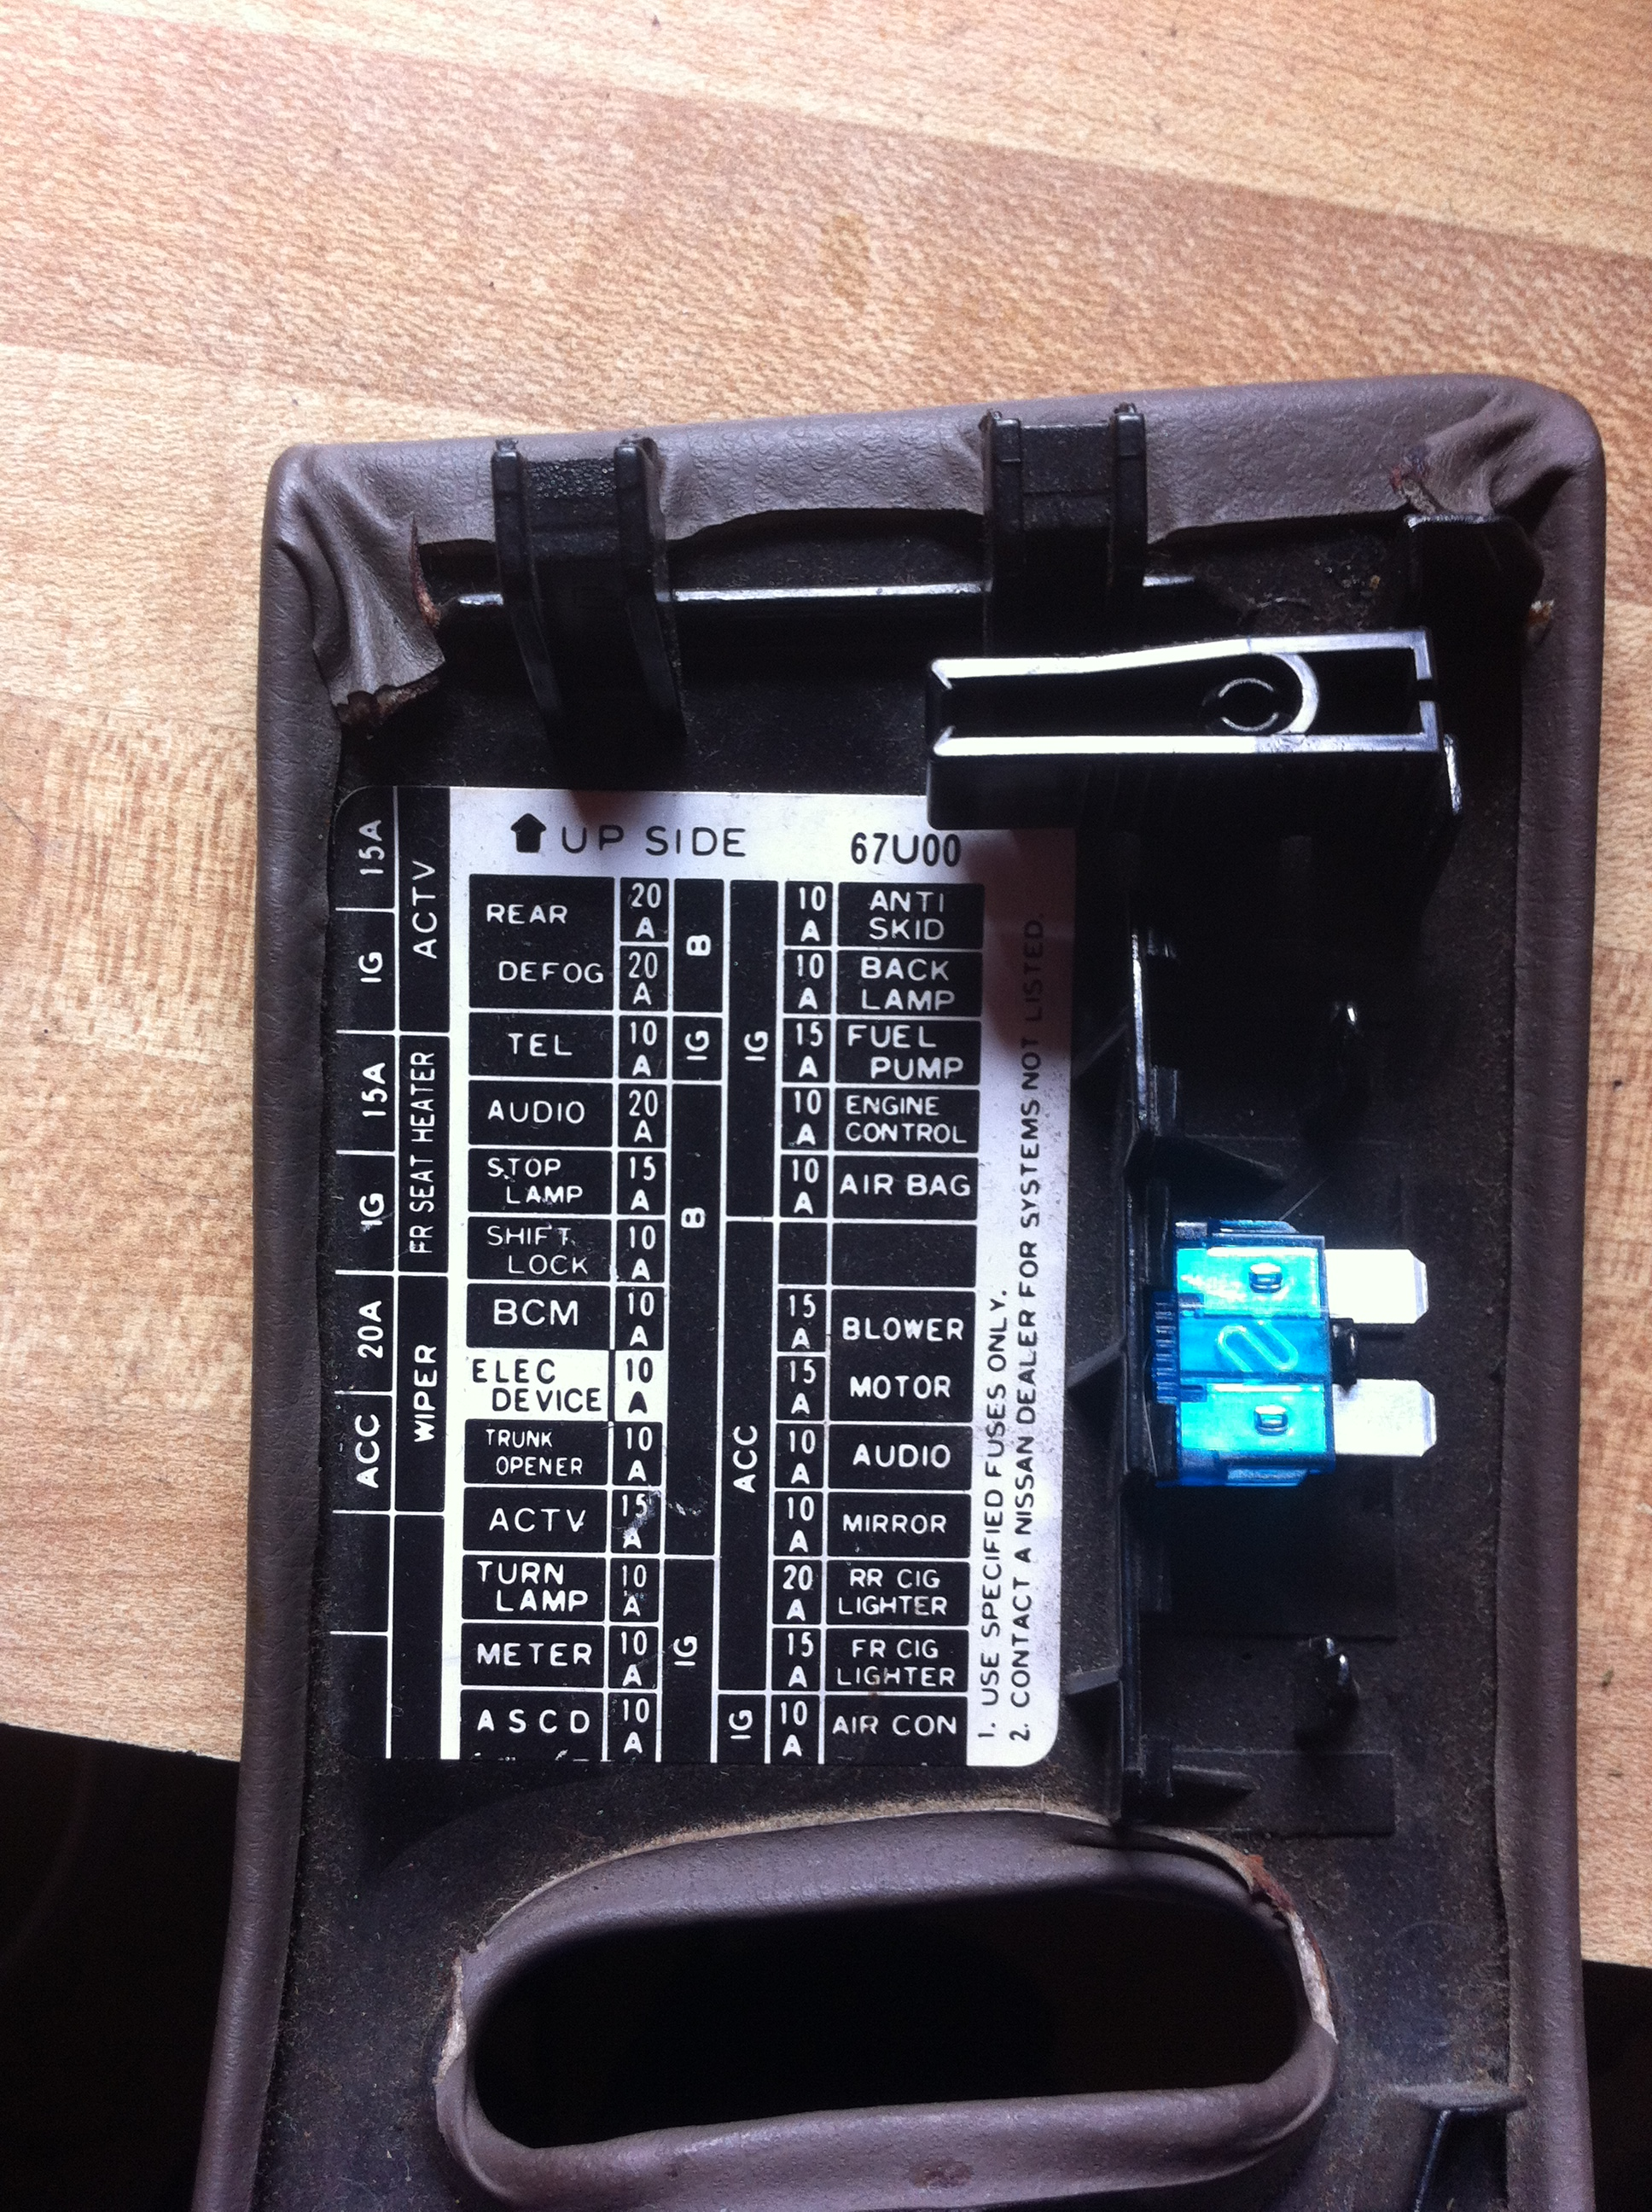 2002 Nissan Pathfinder Fuse Box Location 40 Wiring Diagram Images Altima Fusebox Anyone Got A Picture Of The Back Side Cabin